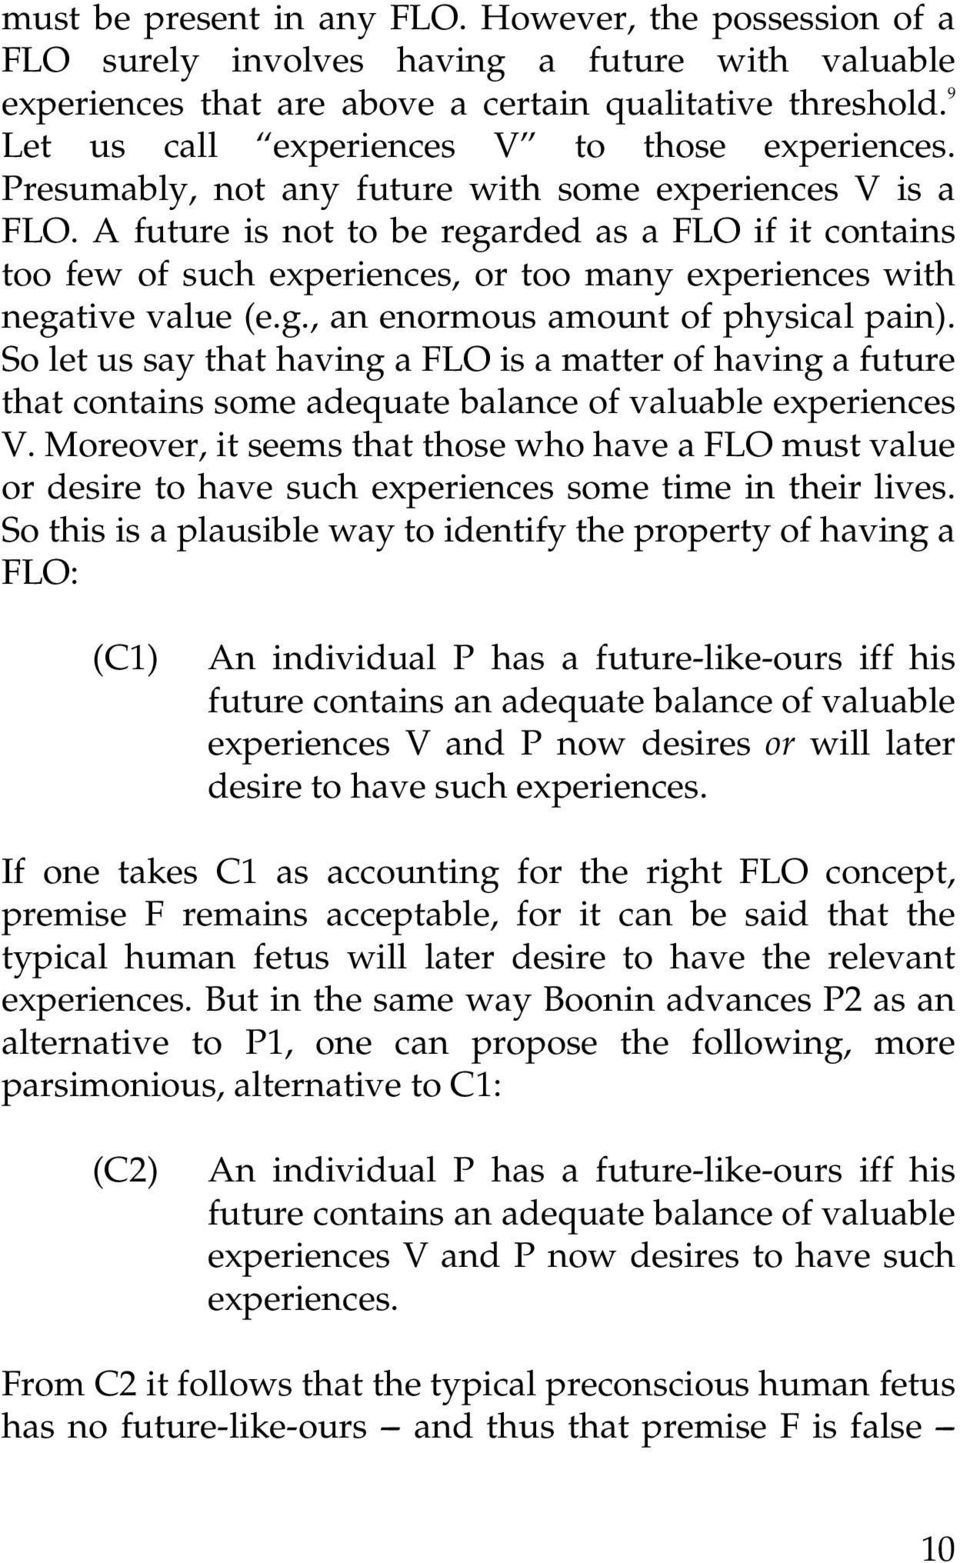 A future is not to be regarded as a FLO if it contains too few of such experiences, or too many experiences with negative value (e.g., an enormous amount of physical pain).